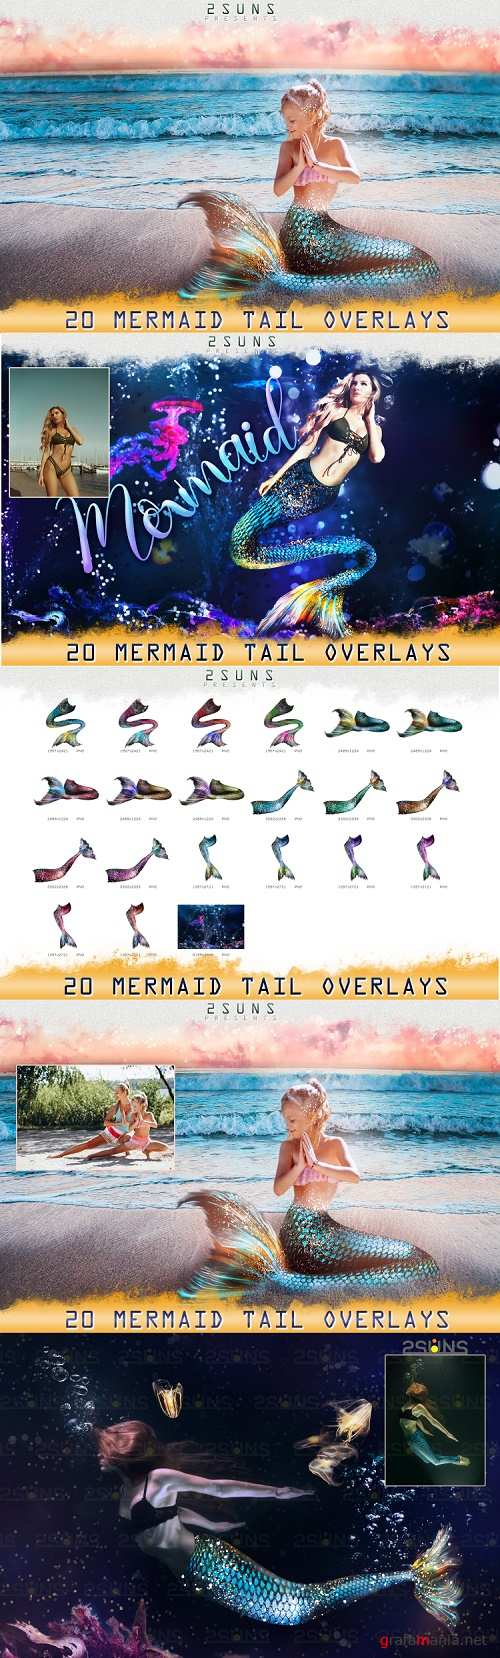 Mermaid tail, tails, overlays, Clipart, PNG - 312697